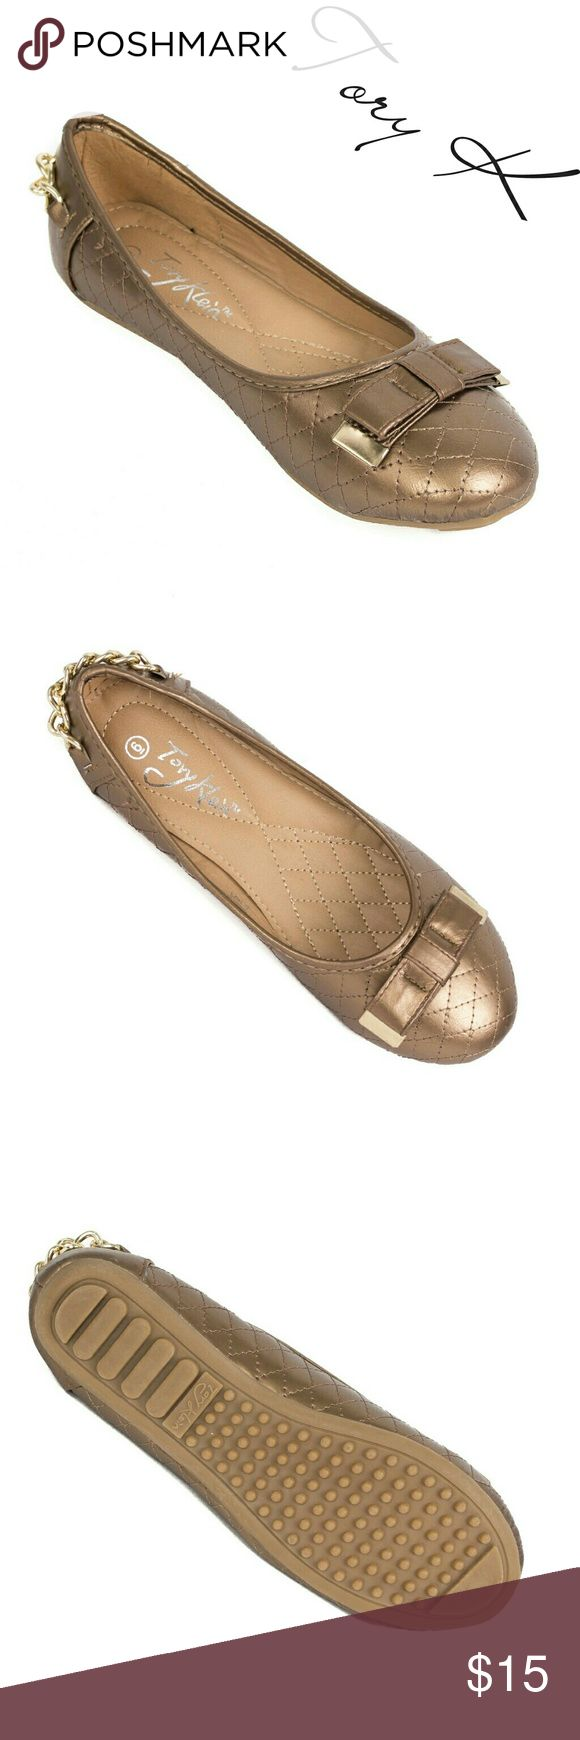 """Women Ballerina Flats with Bow, b-1623, Antique Brand new Tory Klein woman ballerina flats shoes in PU leather with a metal tipped bow and a chain around the back. Soft quilted sole. Bubbled bottom sole for extra traction. A true statement in ladies fashion! Measurements: larger sizes run small. Size 8 measures 9.5 inches, sz 8.5 - 9 3/4"""", sz 9 - 10"""", sz 10 - 10.5"""", all half sizes are in 1/4 inch increments of each other. Tory K  Shoes Flats & Loafers"""